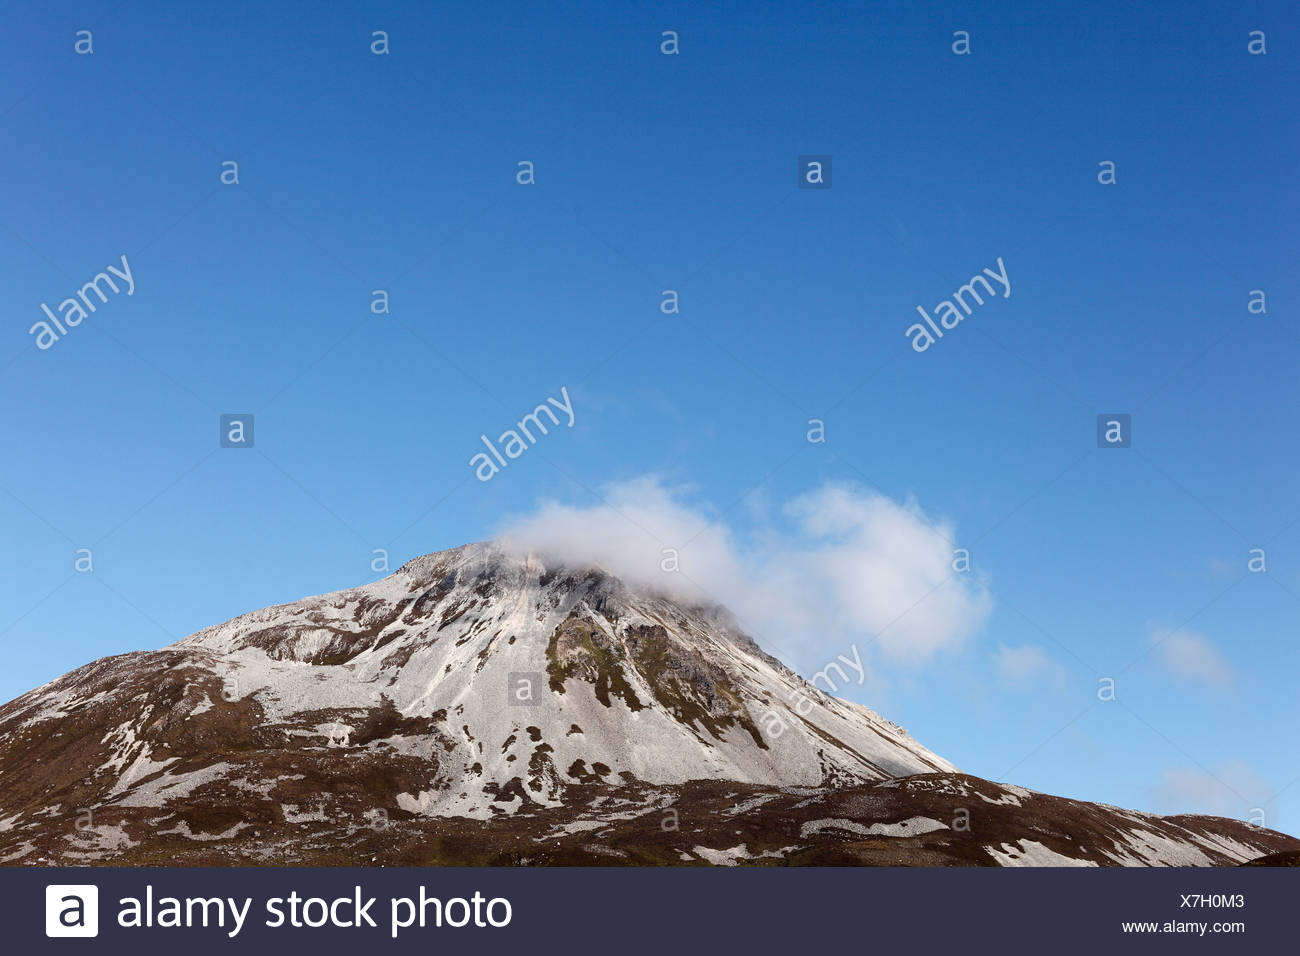 Mount Errigal, Glenveagh National Park, County Donegal, Ireland, British Isles, Europe - Stock Image